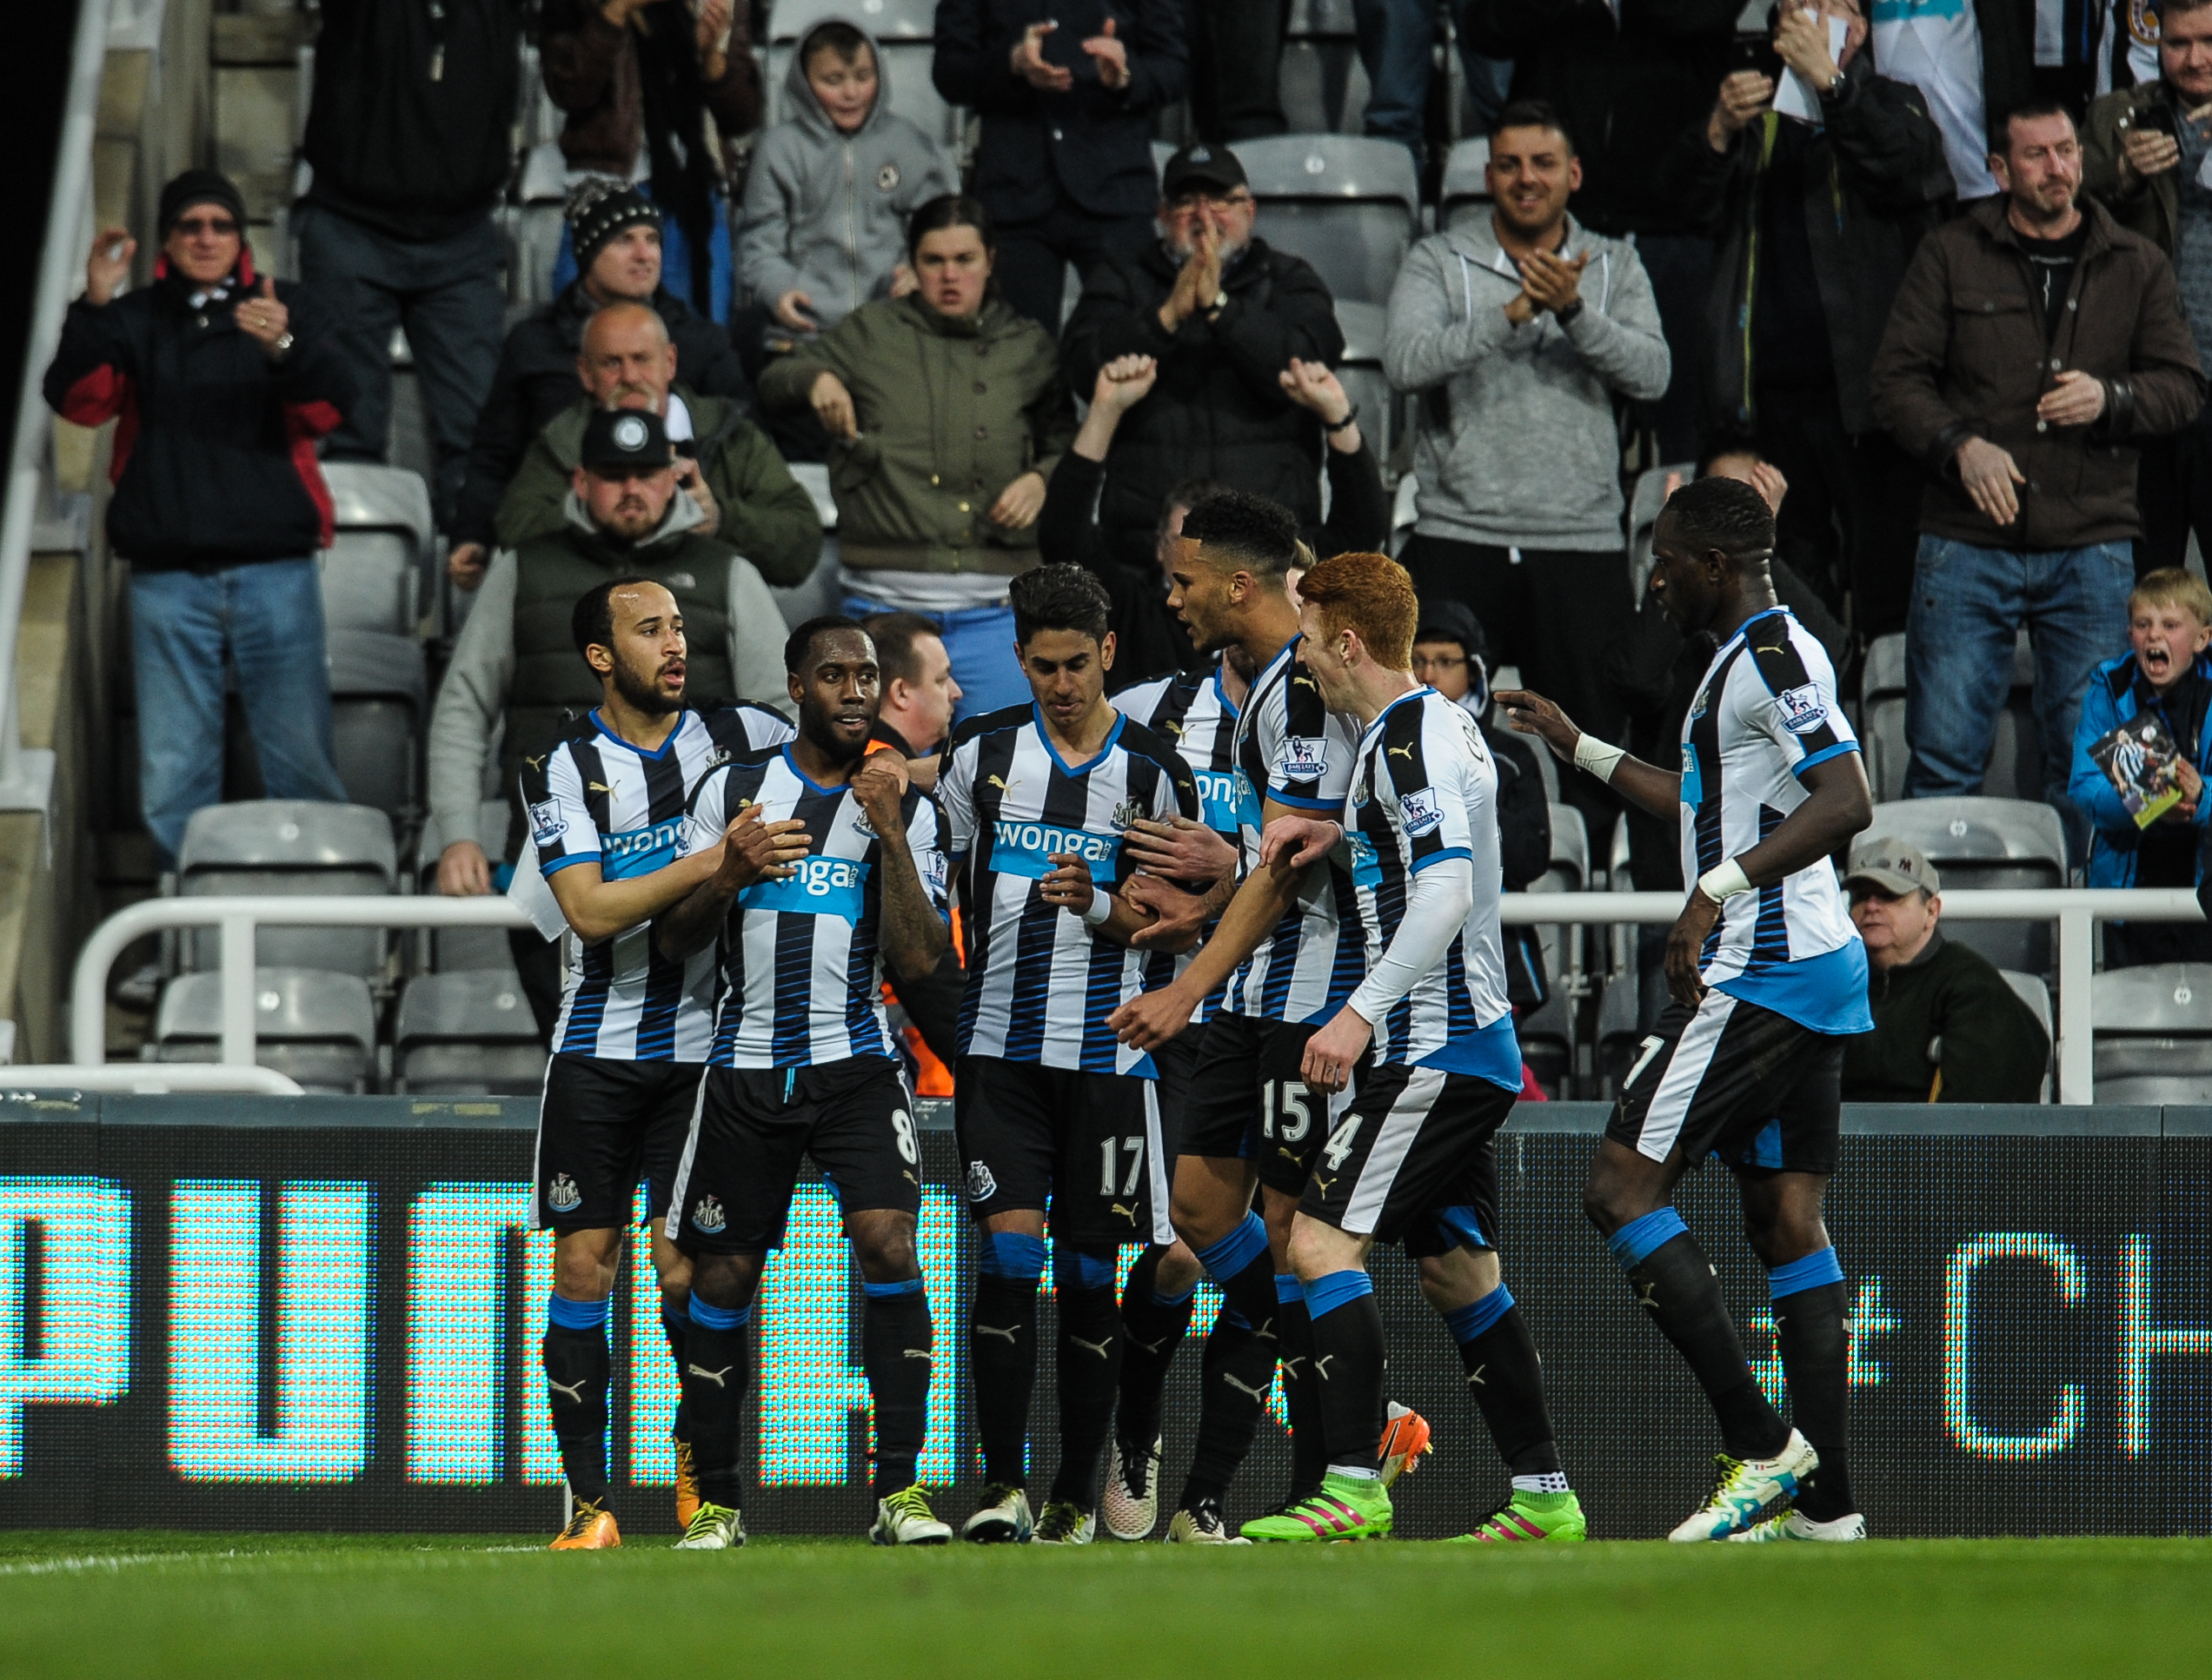 Newcastle United: Newcastle United Show Fight In Draw With Manchester City